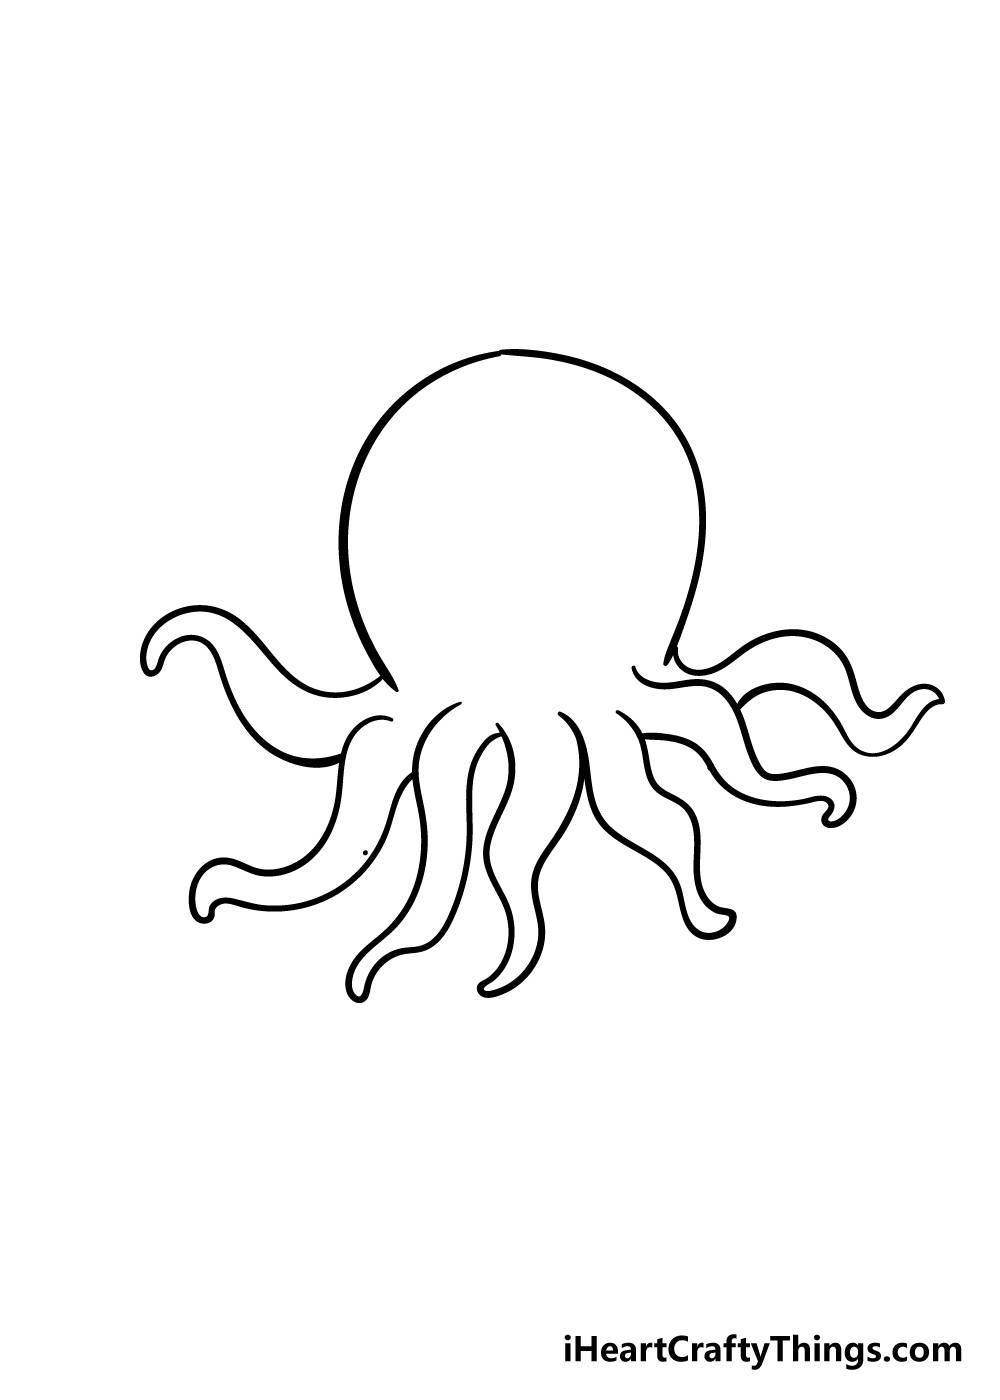 octopus drawing step 5